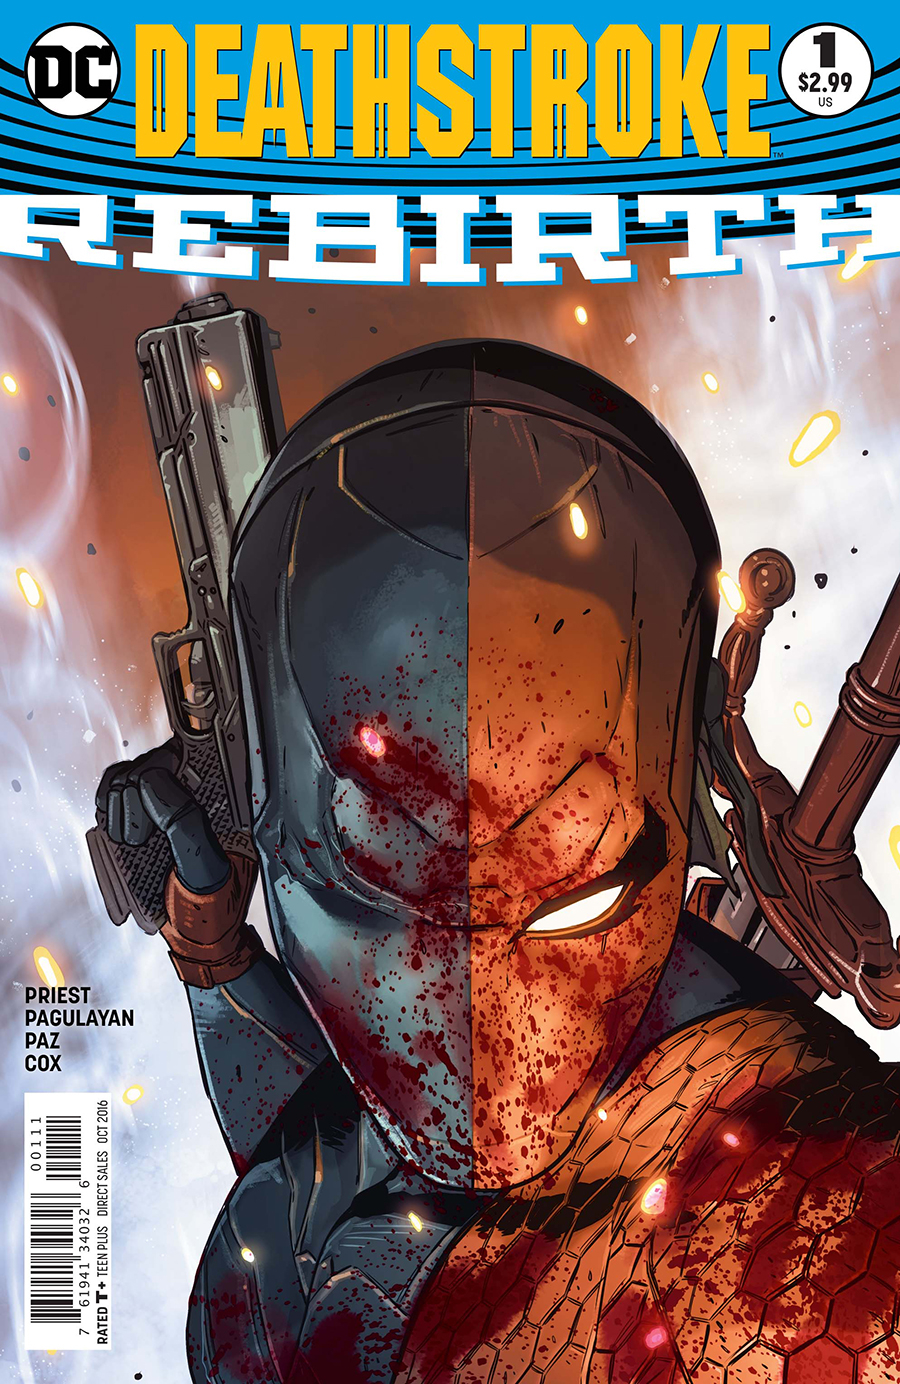 From the start, Christopher Priest's run on  Deathstroke  has been about fatherhood and regrets.